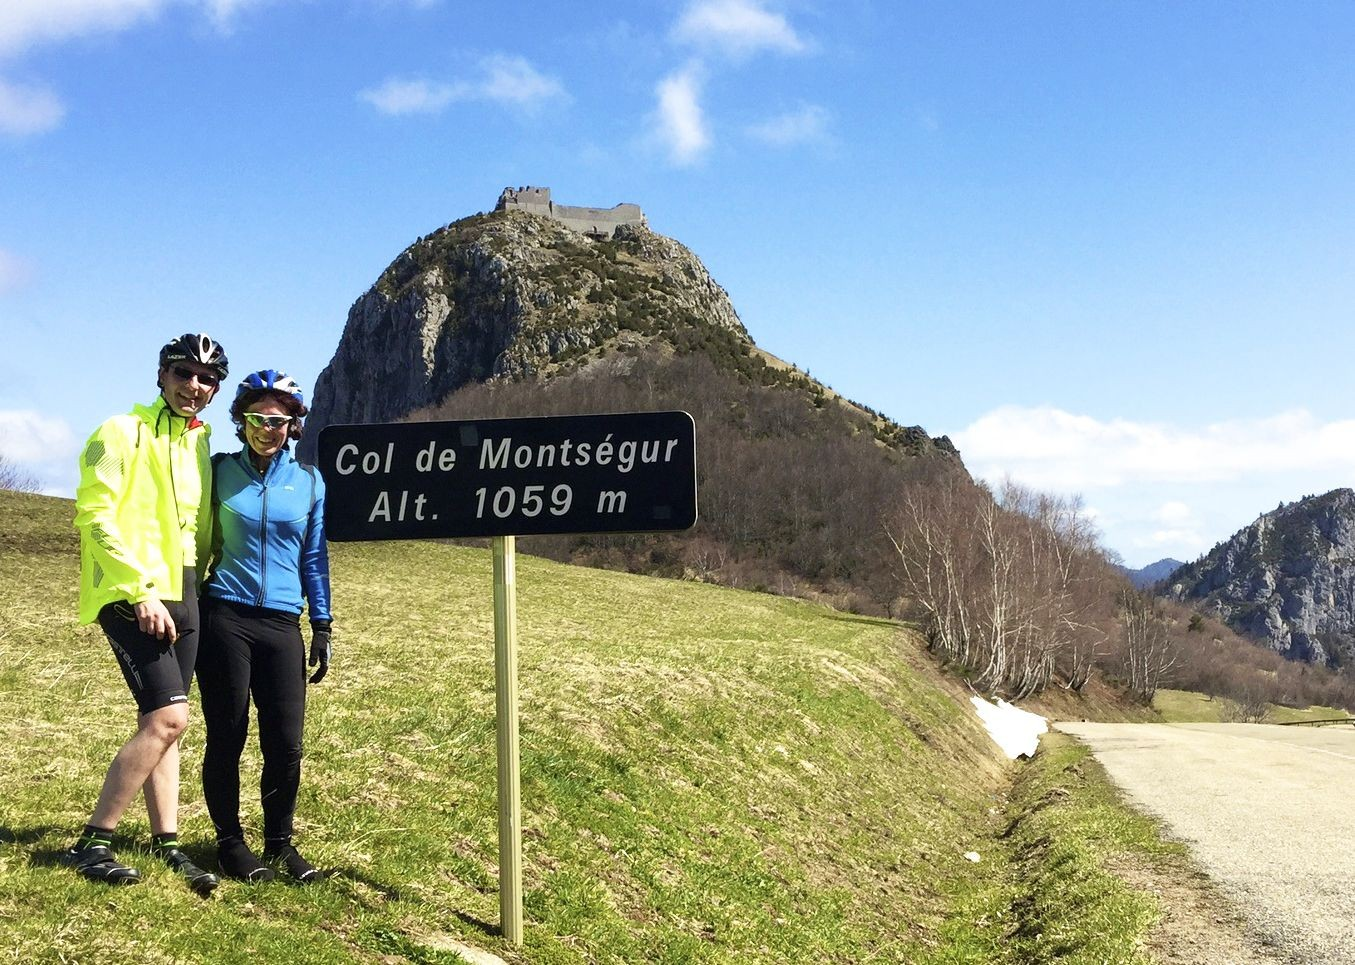 guided-road-cycling-holiday-france.jpg - France - Pyrenees Fitness Week - Guided Road Cycling Holiday (Grade 3-4) - Road Cycling